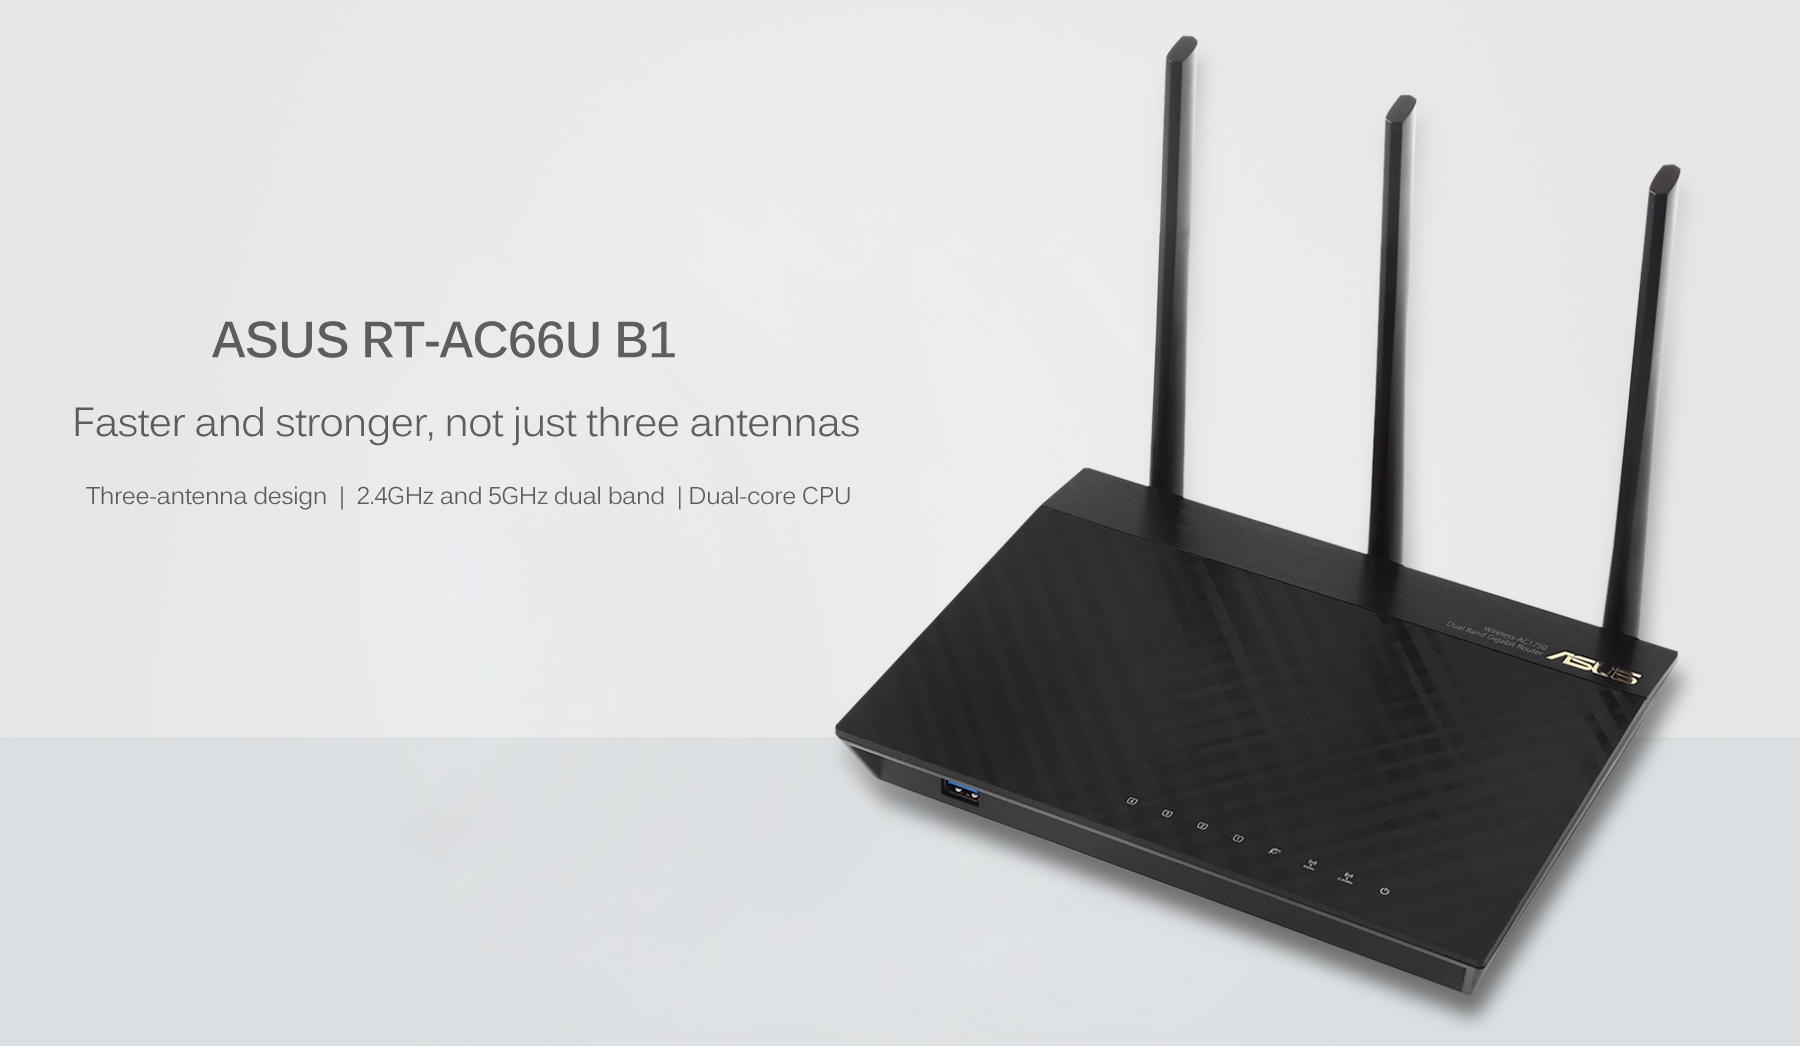 ASUS RT - AC66U B1 Dual-band 3x3 AC1750 WiFi 4-port Gigabit Router